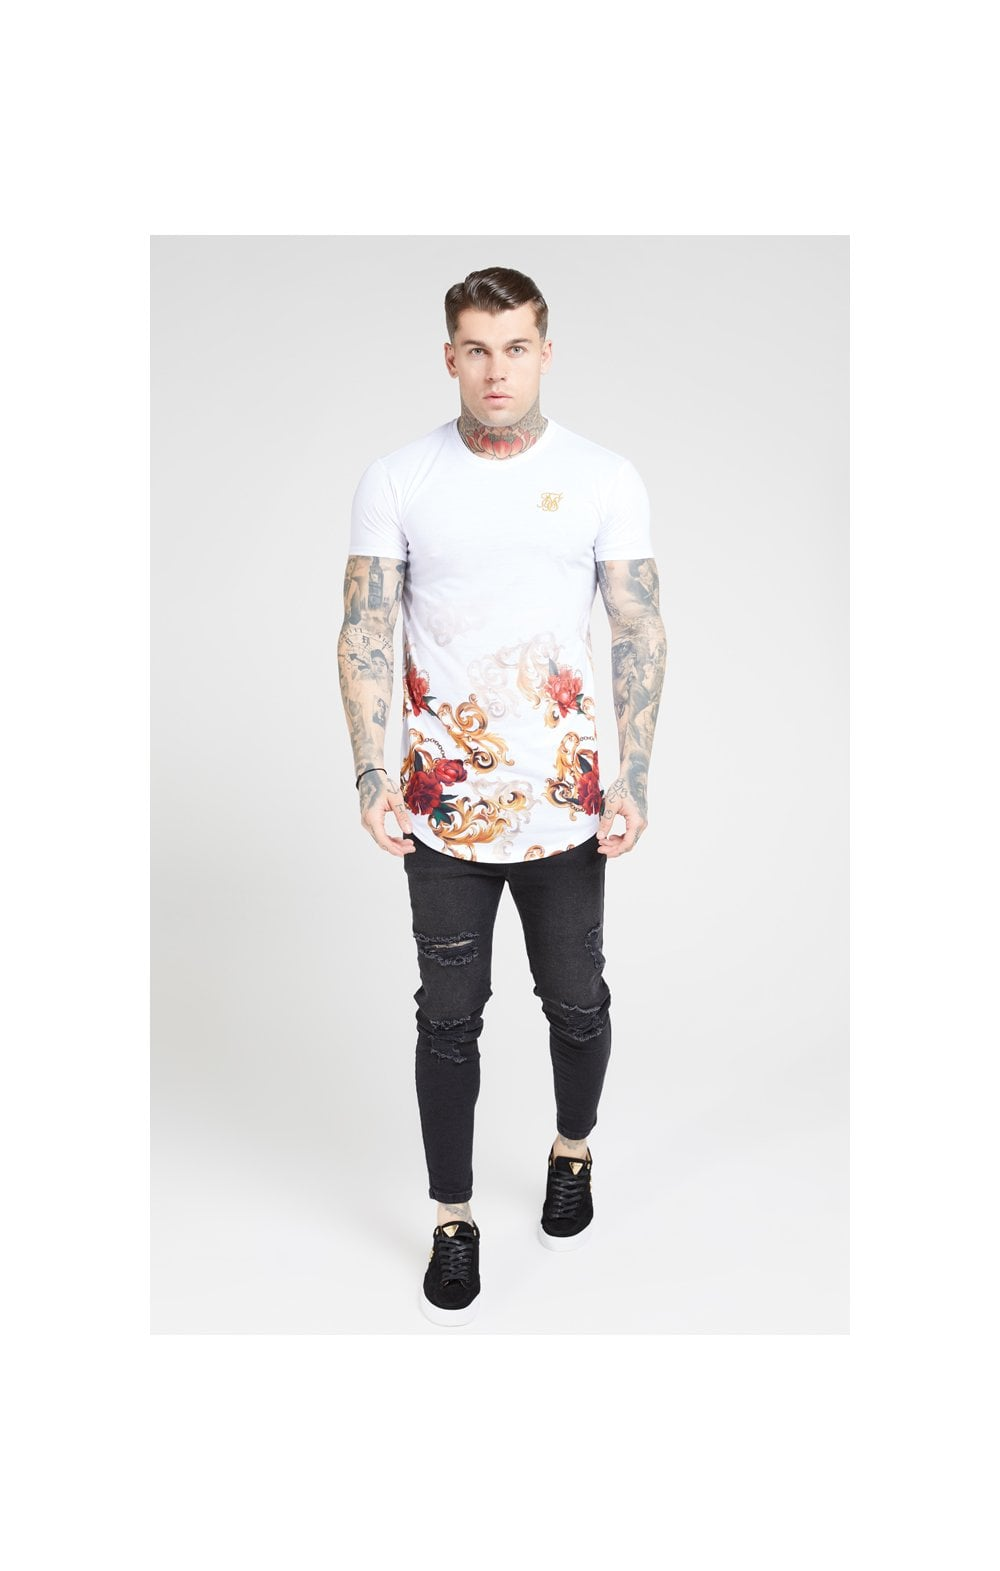 SikSilk S/S Curved Hem Tee – White & Floral Elegance (2)